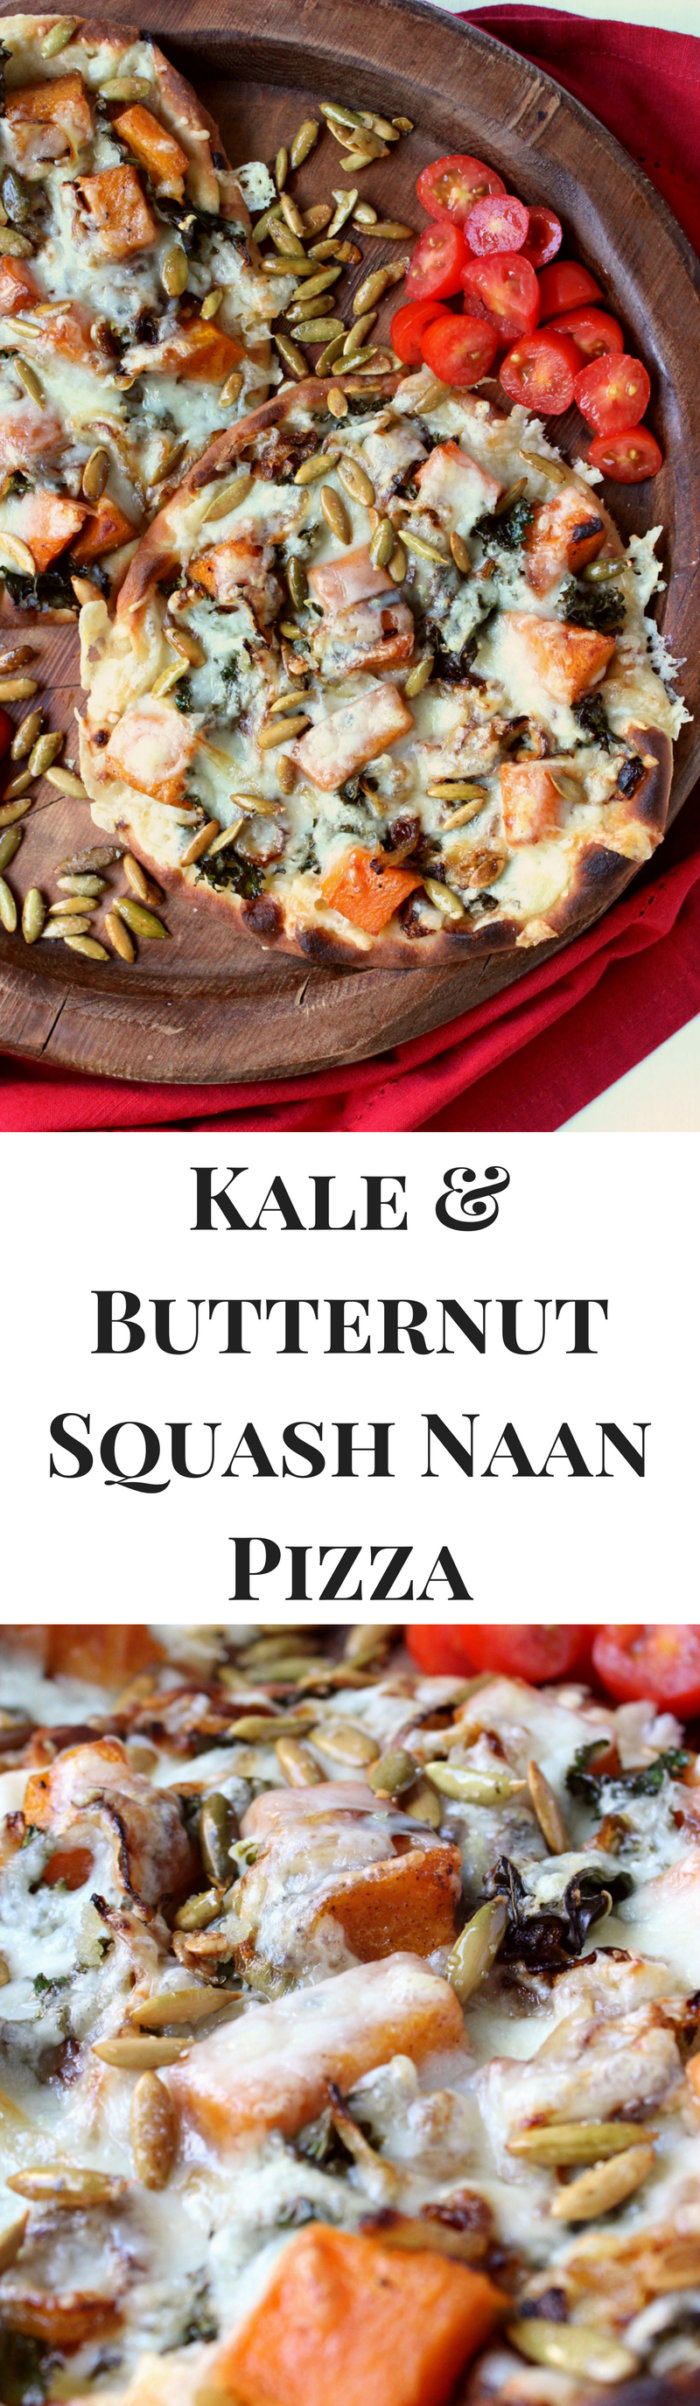 Kale & Butternut Squash Naan Pizzas w/ Cider Caramelized Onions, Aged Cheddar, & Sugared Pepitas - completely vegetarian, delicious, and perfect for fall!